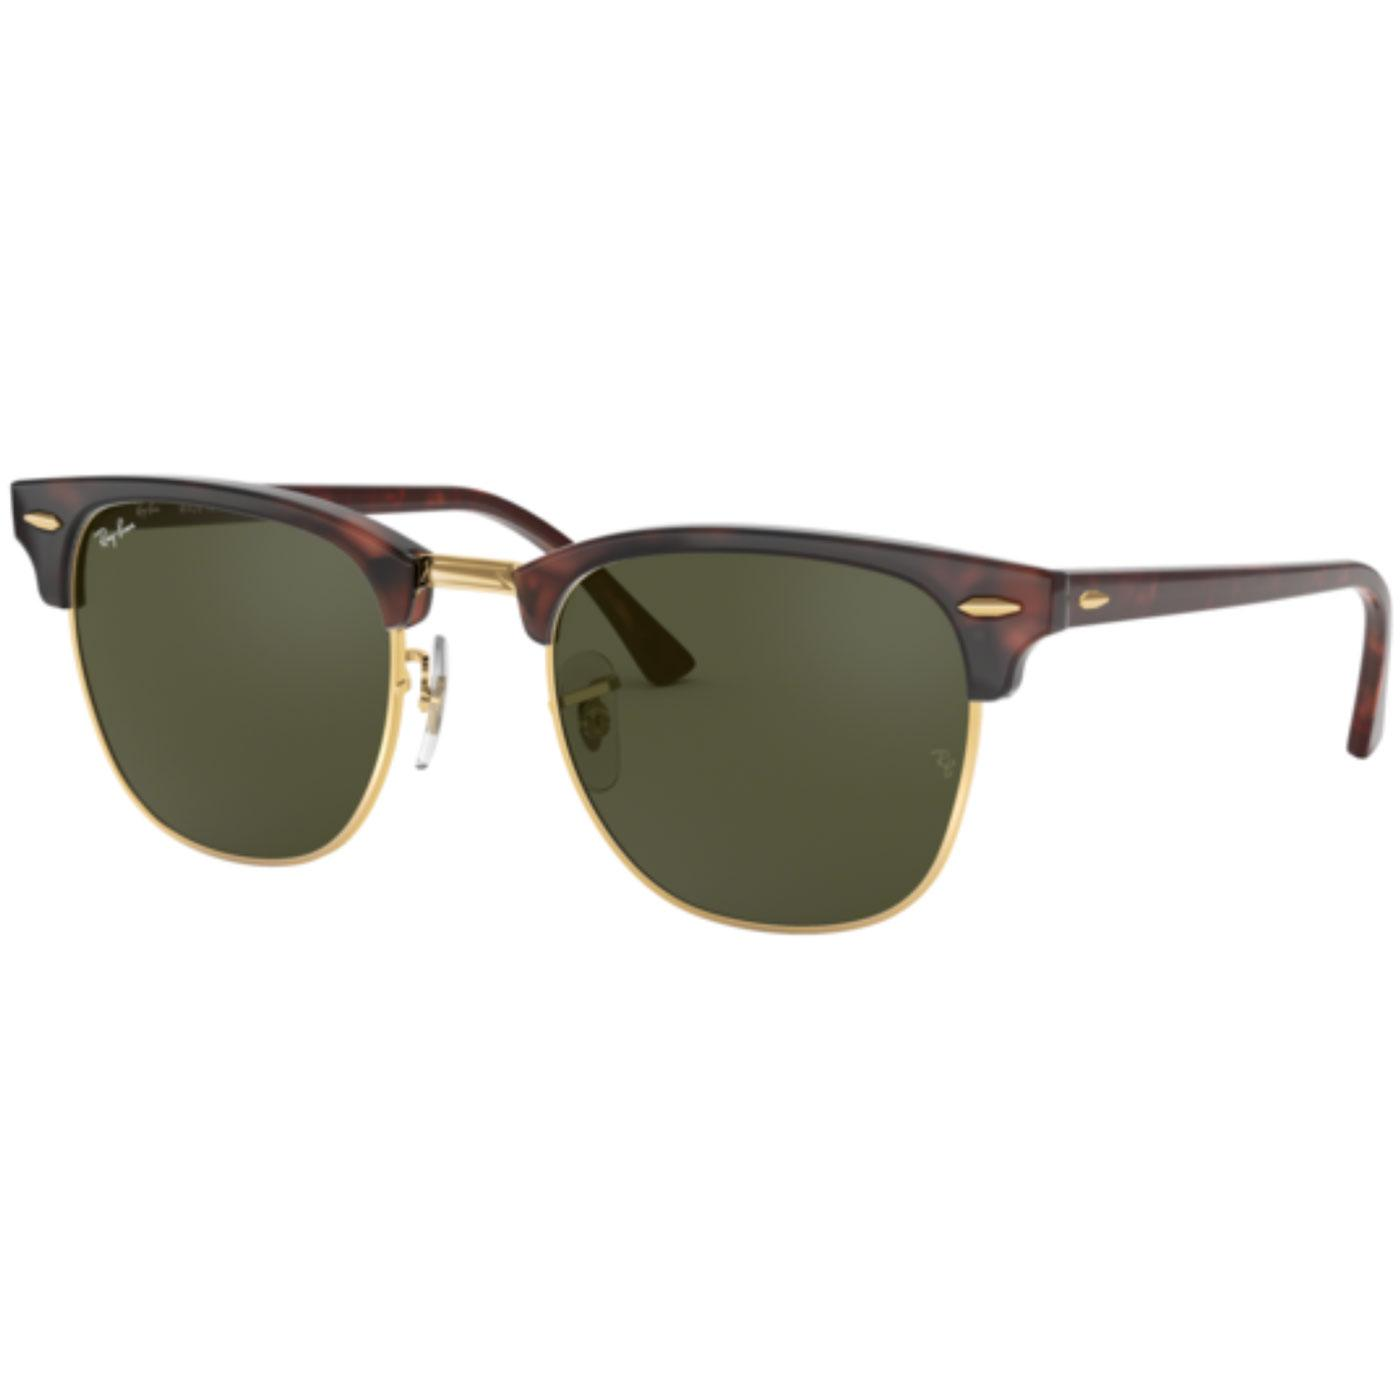 87bc2abdff Ray-Ban Retro Mod Clubmaster Indie Sunglasses in Brown